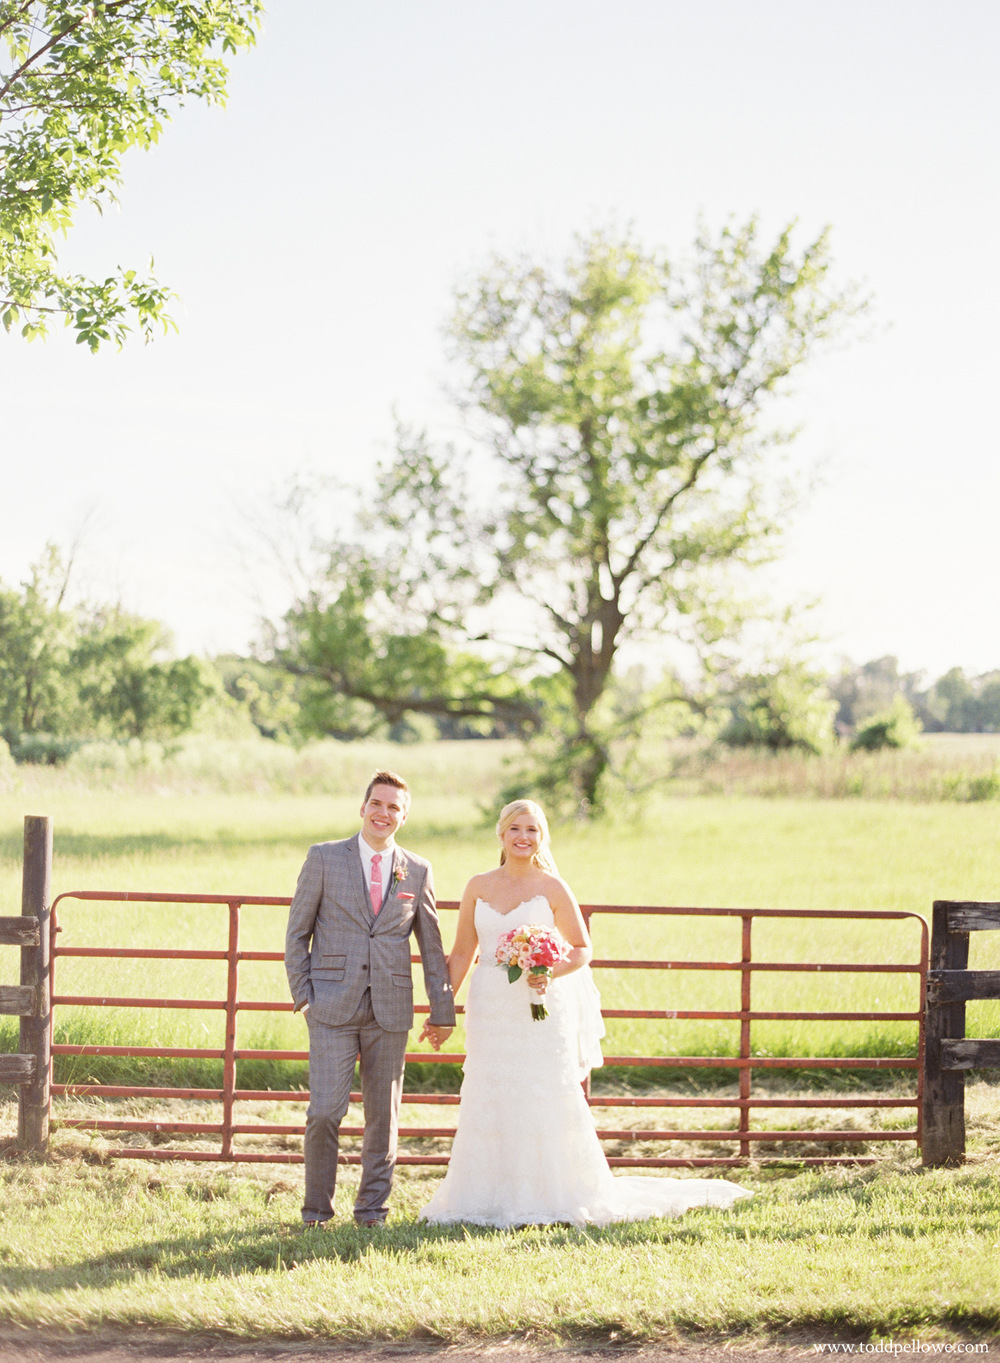 33-gingerwoods-farm-wedding-photography-006.jpg